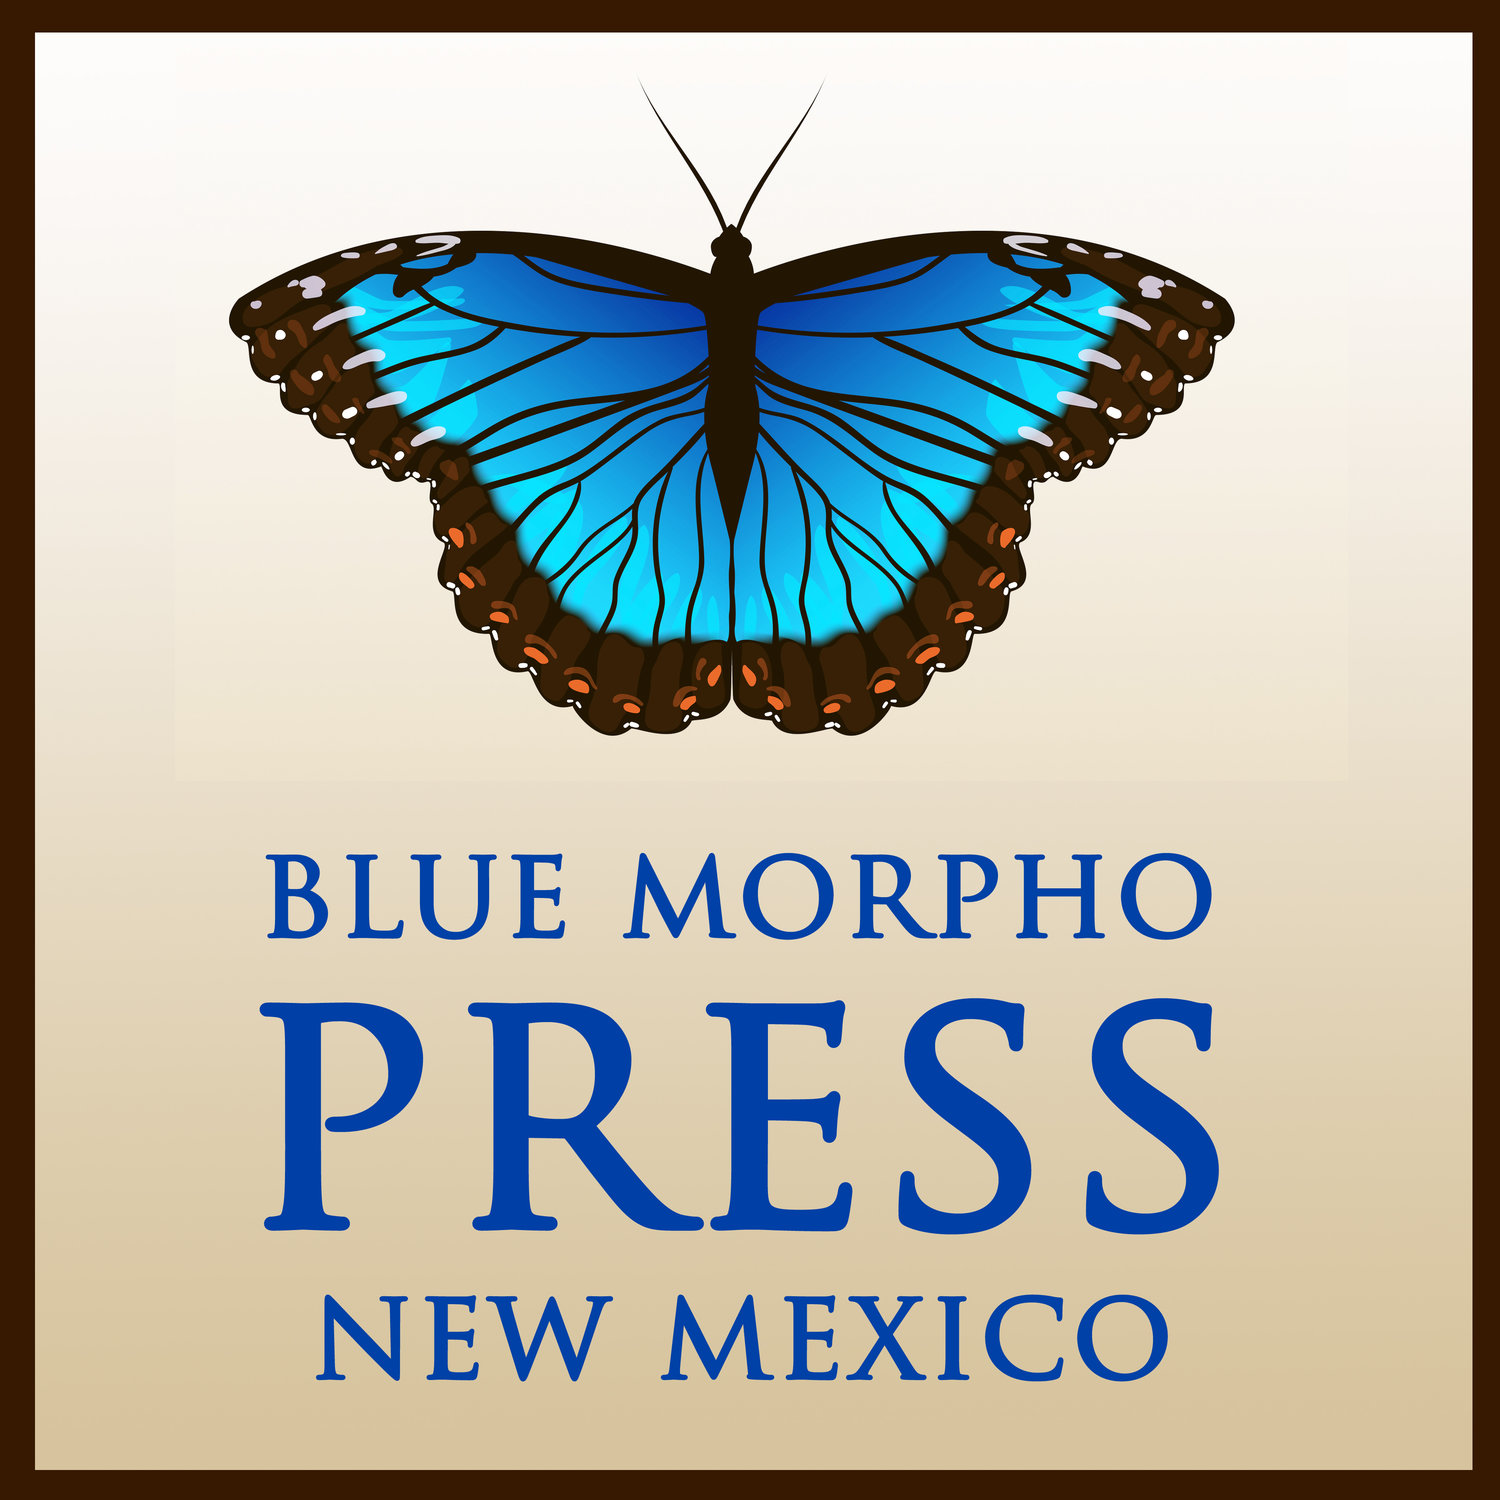 blue morpho press new mexico